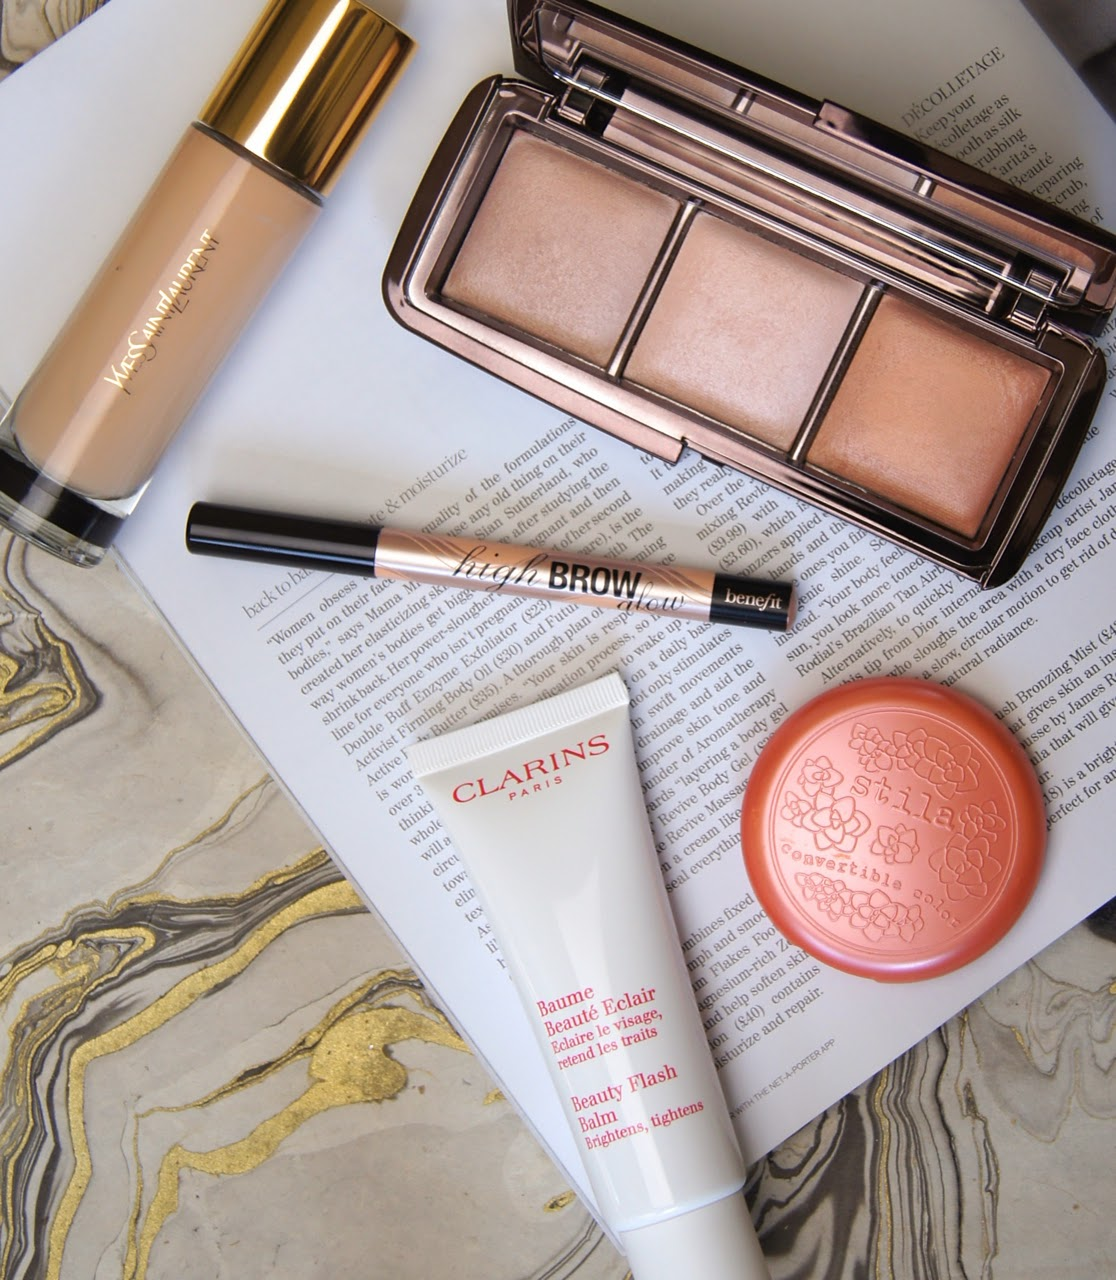 5 makeup products for glowing skin